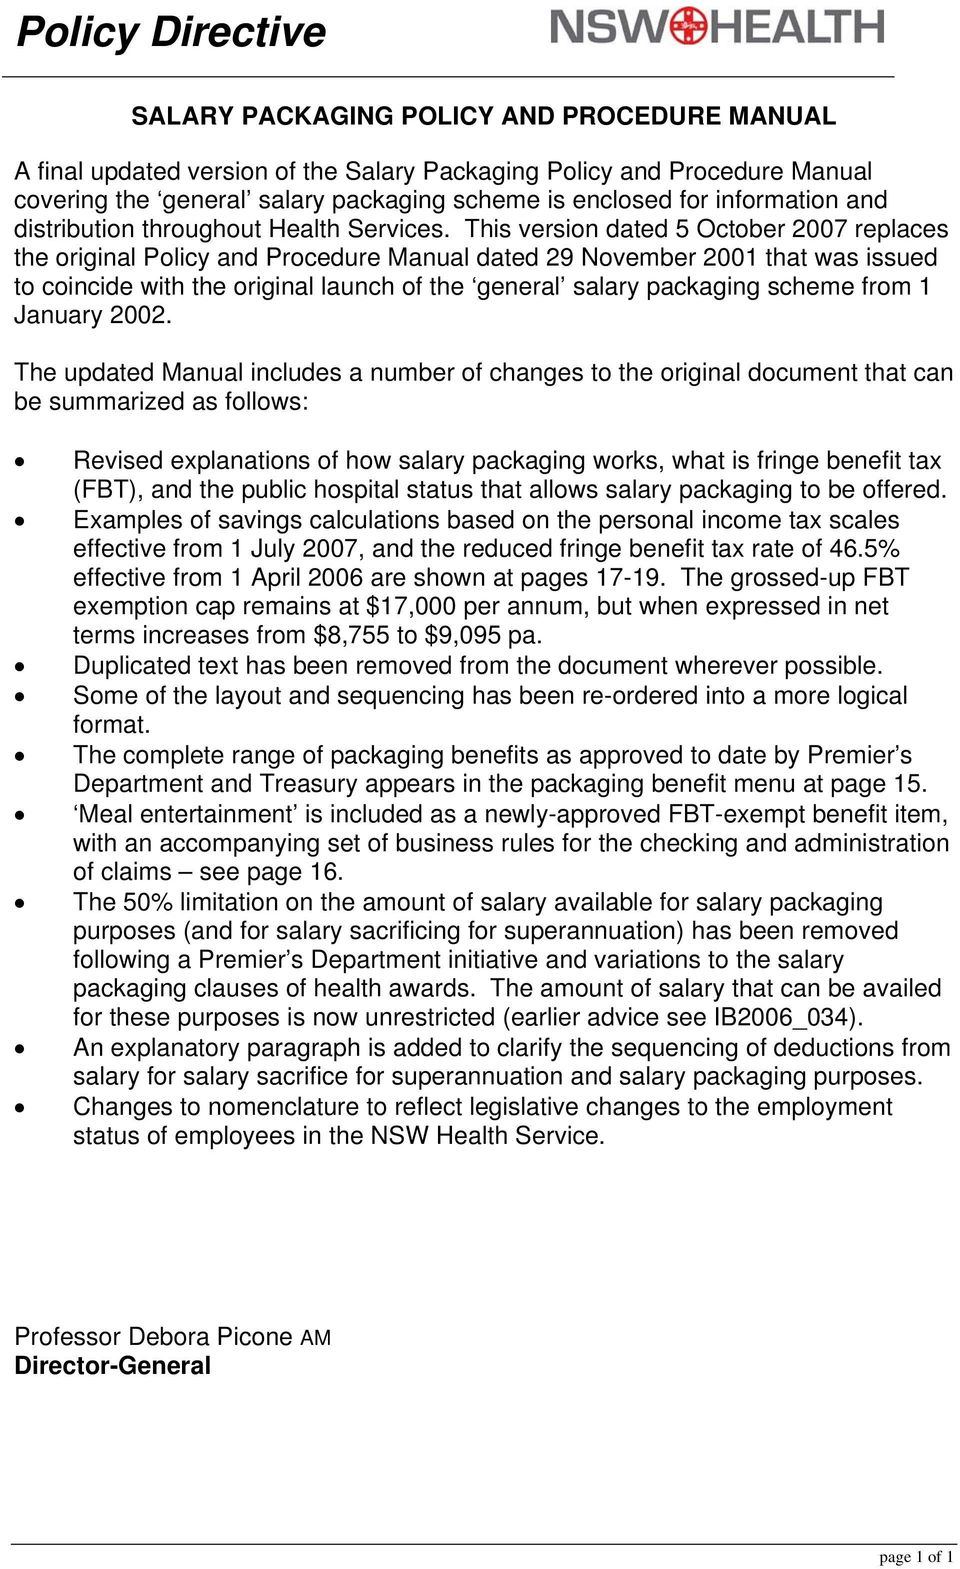 This version dated 5 October 2007 replaces the original Policy and Procedure Manual dated 29 November 2001 that was issued to coincide with the original launch of the general salary packaging scheme